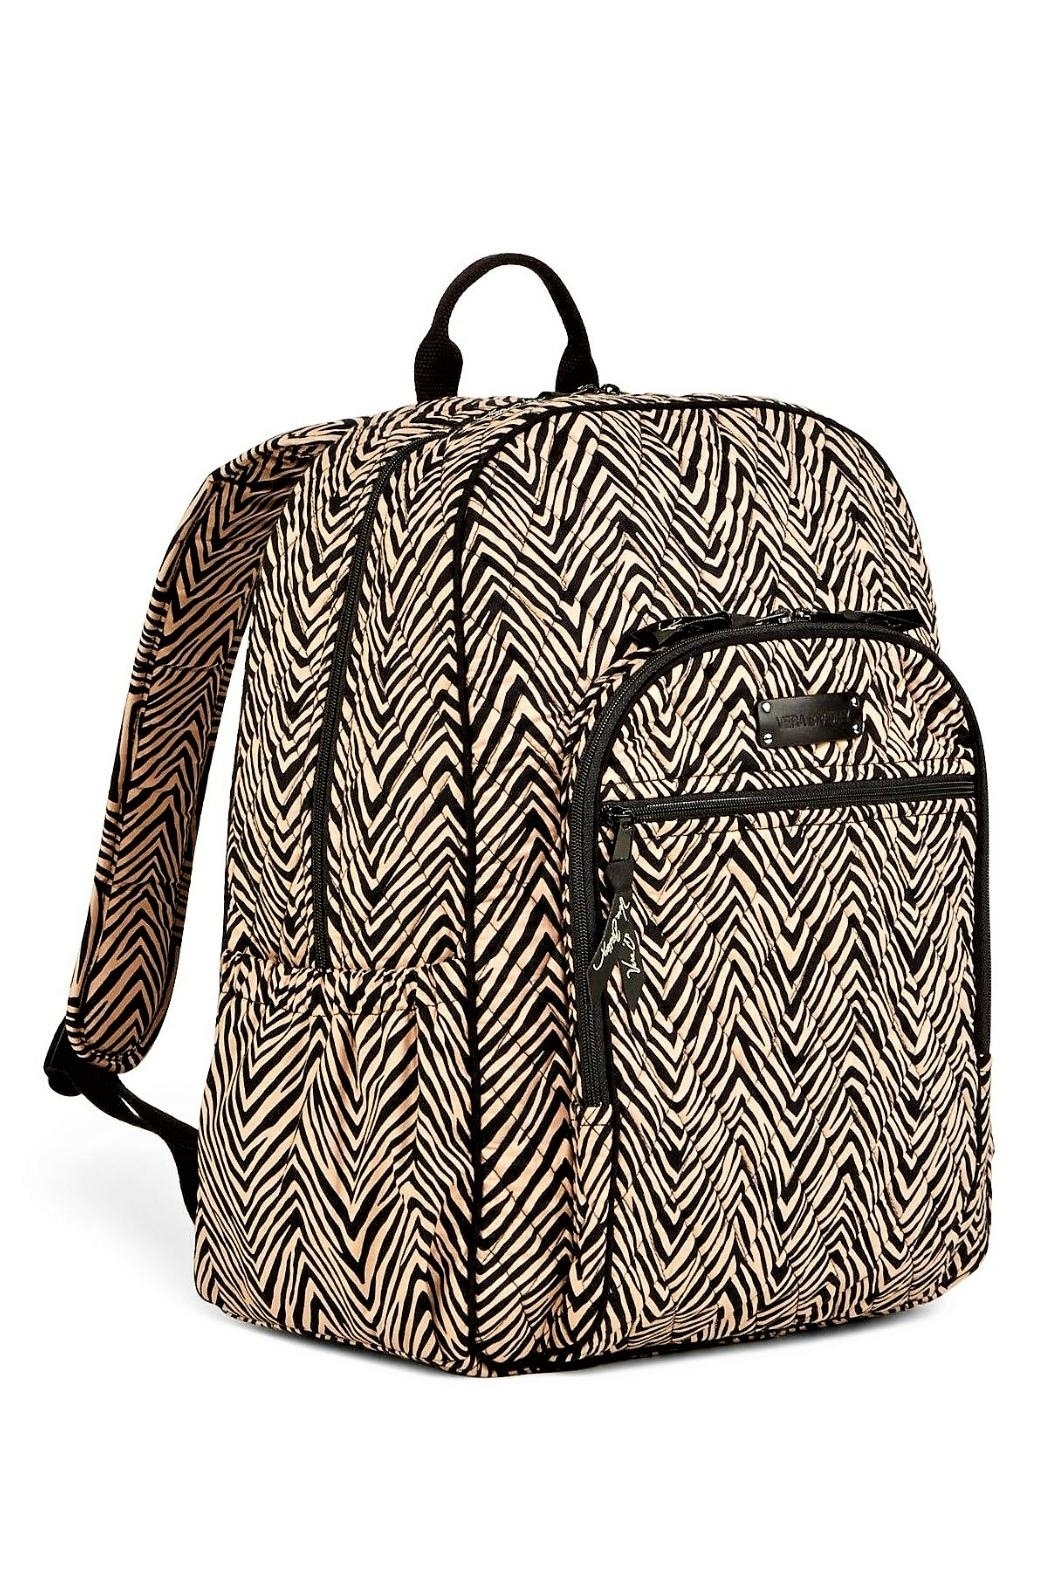 Vera Bradley Zebra Campus Backpack - Front Full Image